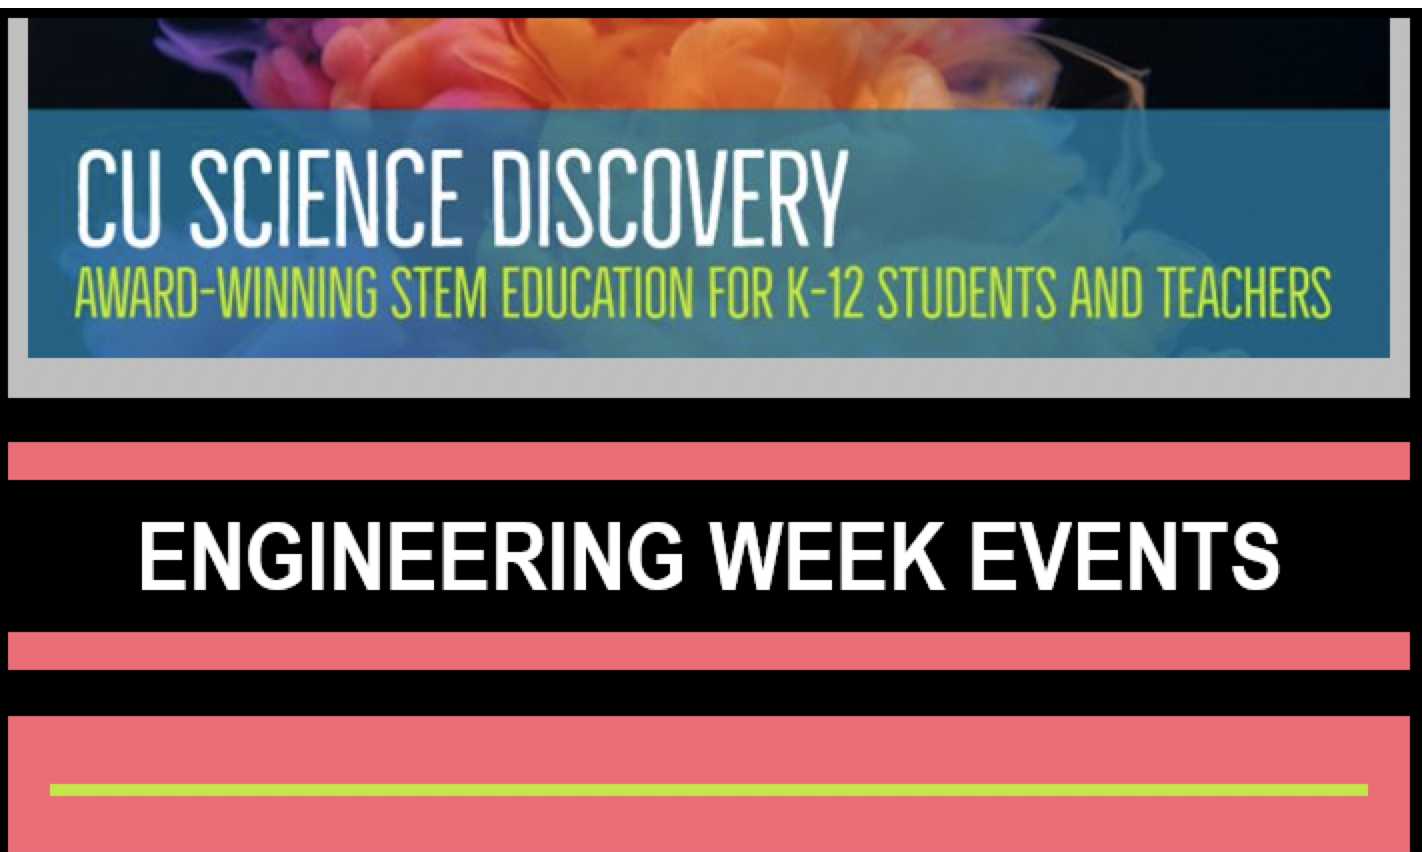 CU Science Discovery Engineering Week Event Promo poster